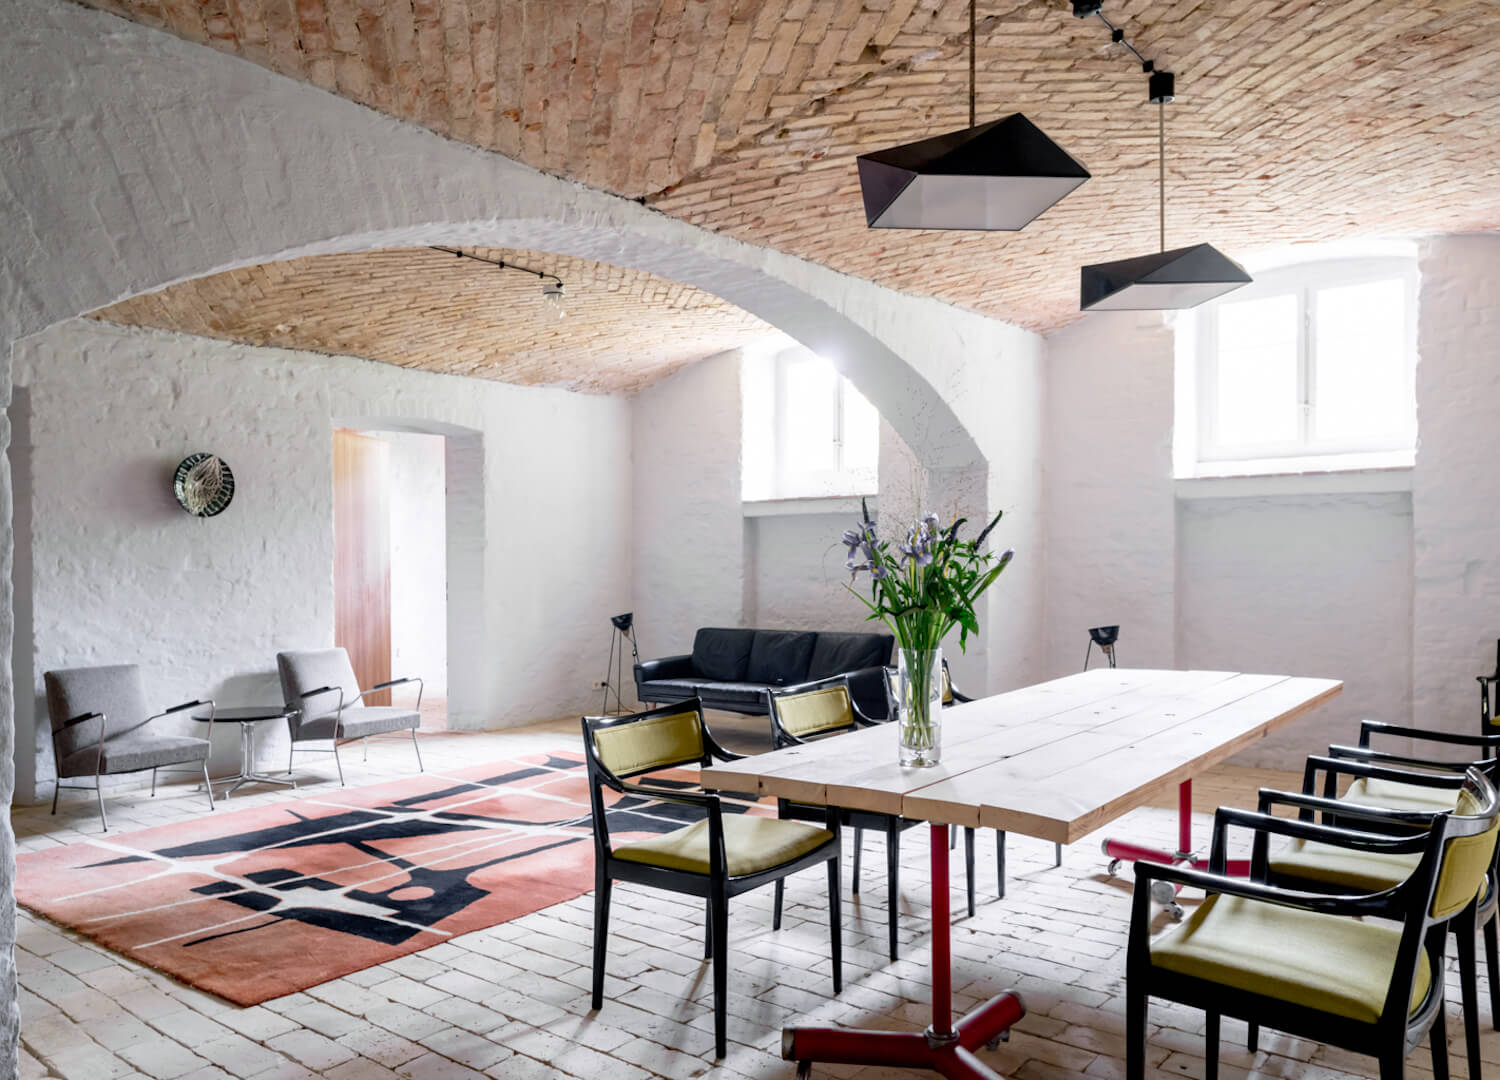 est living interiors berlin summer house loft kolasinkina 15